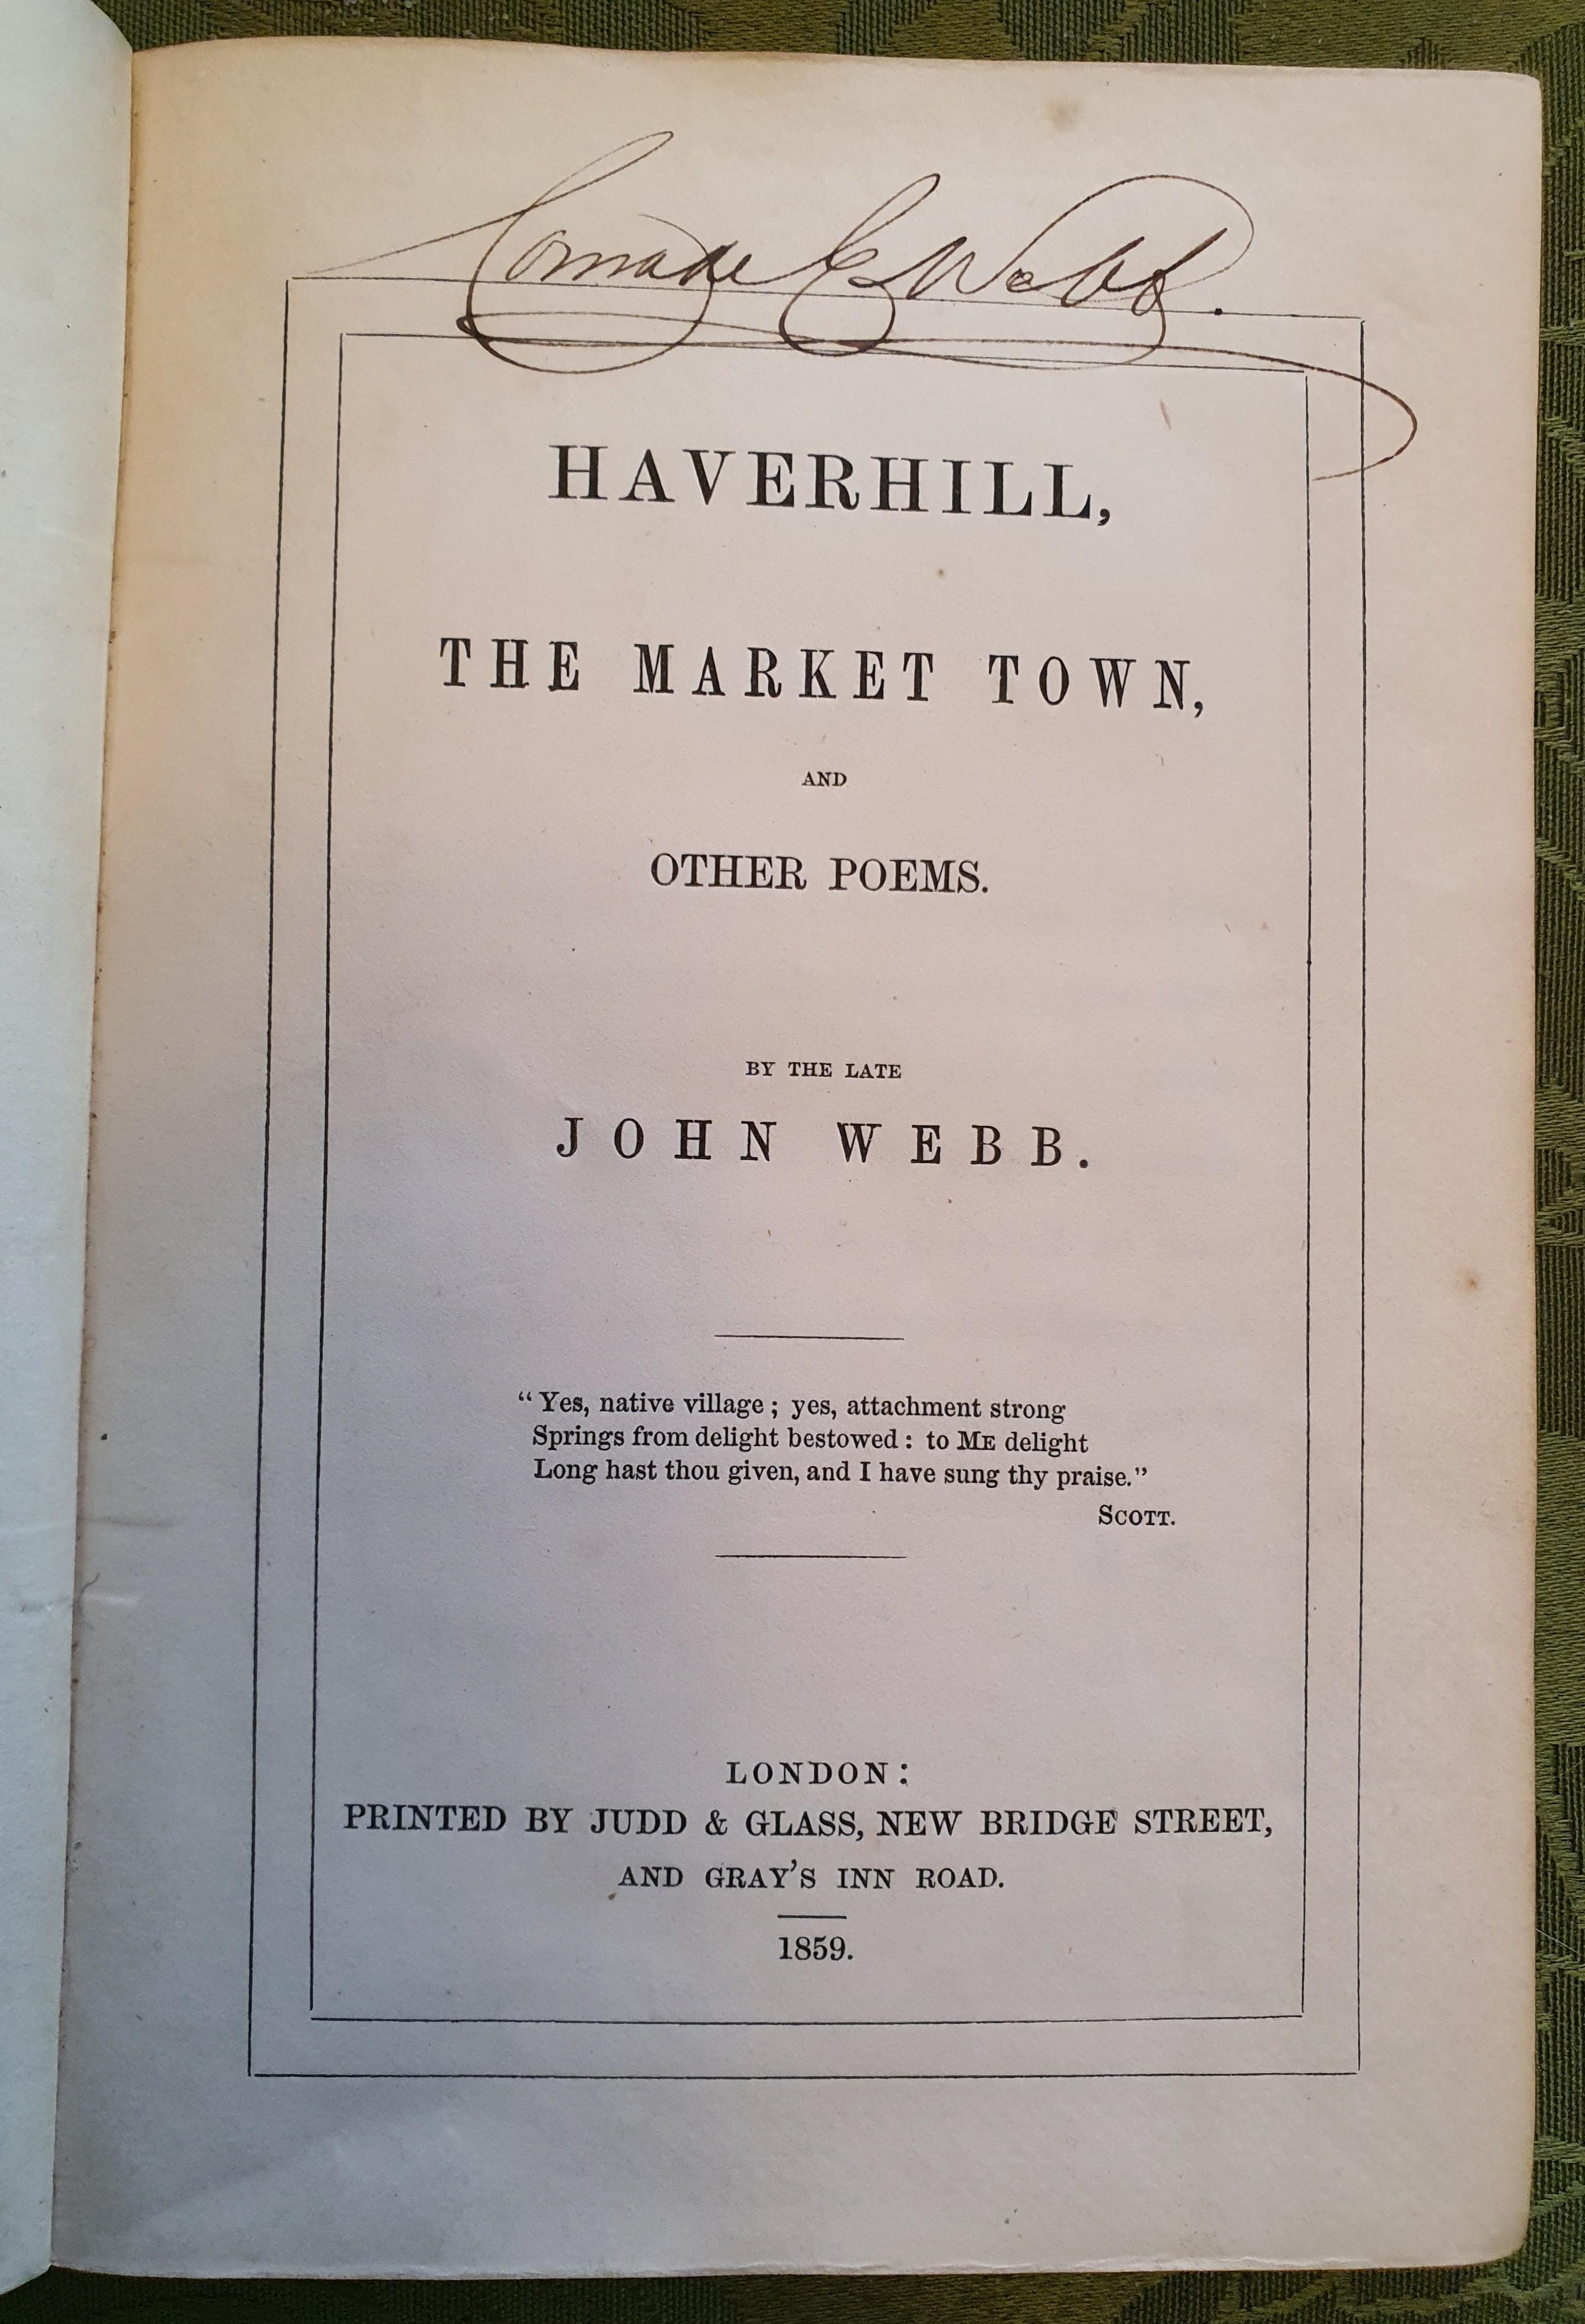 Image for Haverhill, The Market Town, And Other Poems. By The Late John Webb.